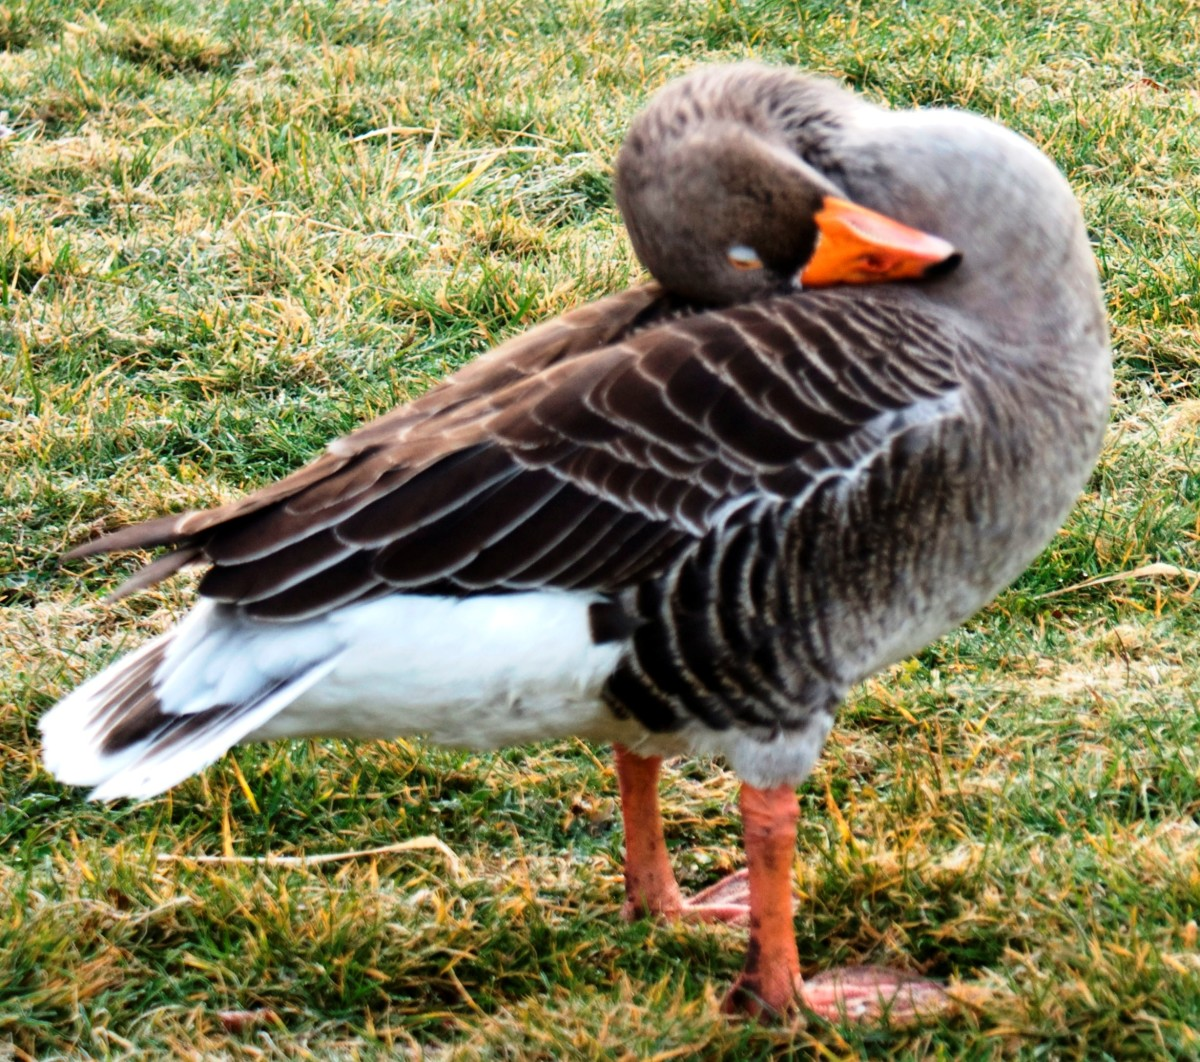 Awesome new yoga pose: sitting duck. Can you do this? Didn't think so!